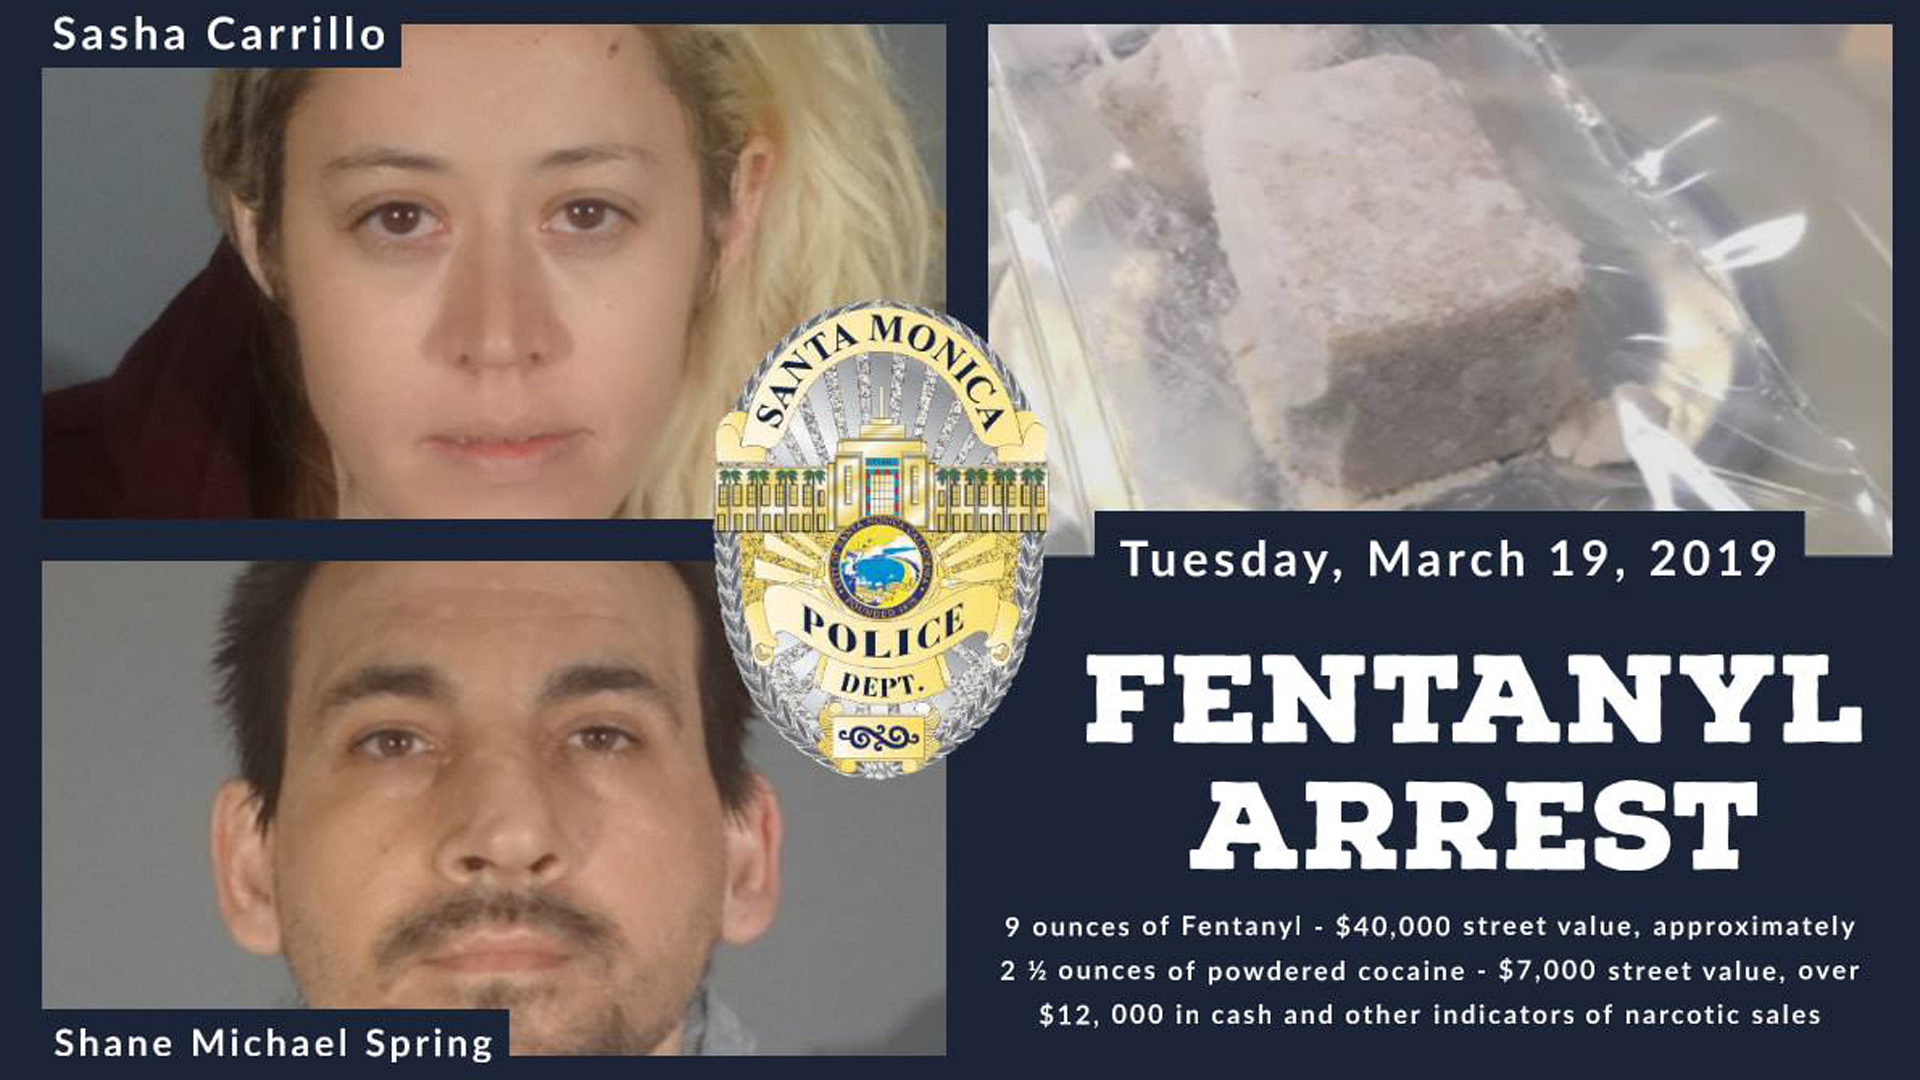 Sasha Carrillo, 33, of Santa Monica and Shane Michael Spring, 36, of Santa Monica, pictured in photo released by the Santa Monica Police Department on March 20, 2019.